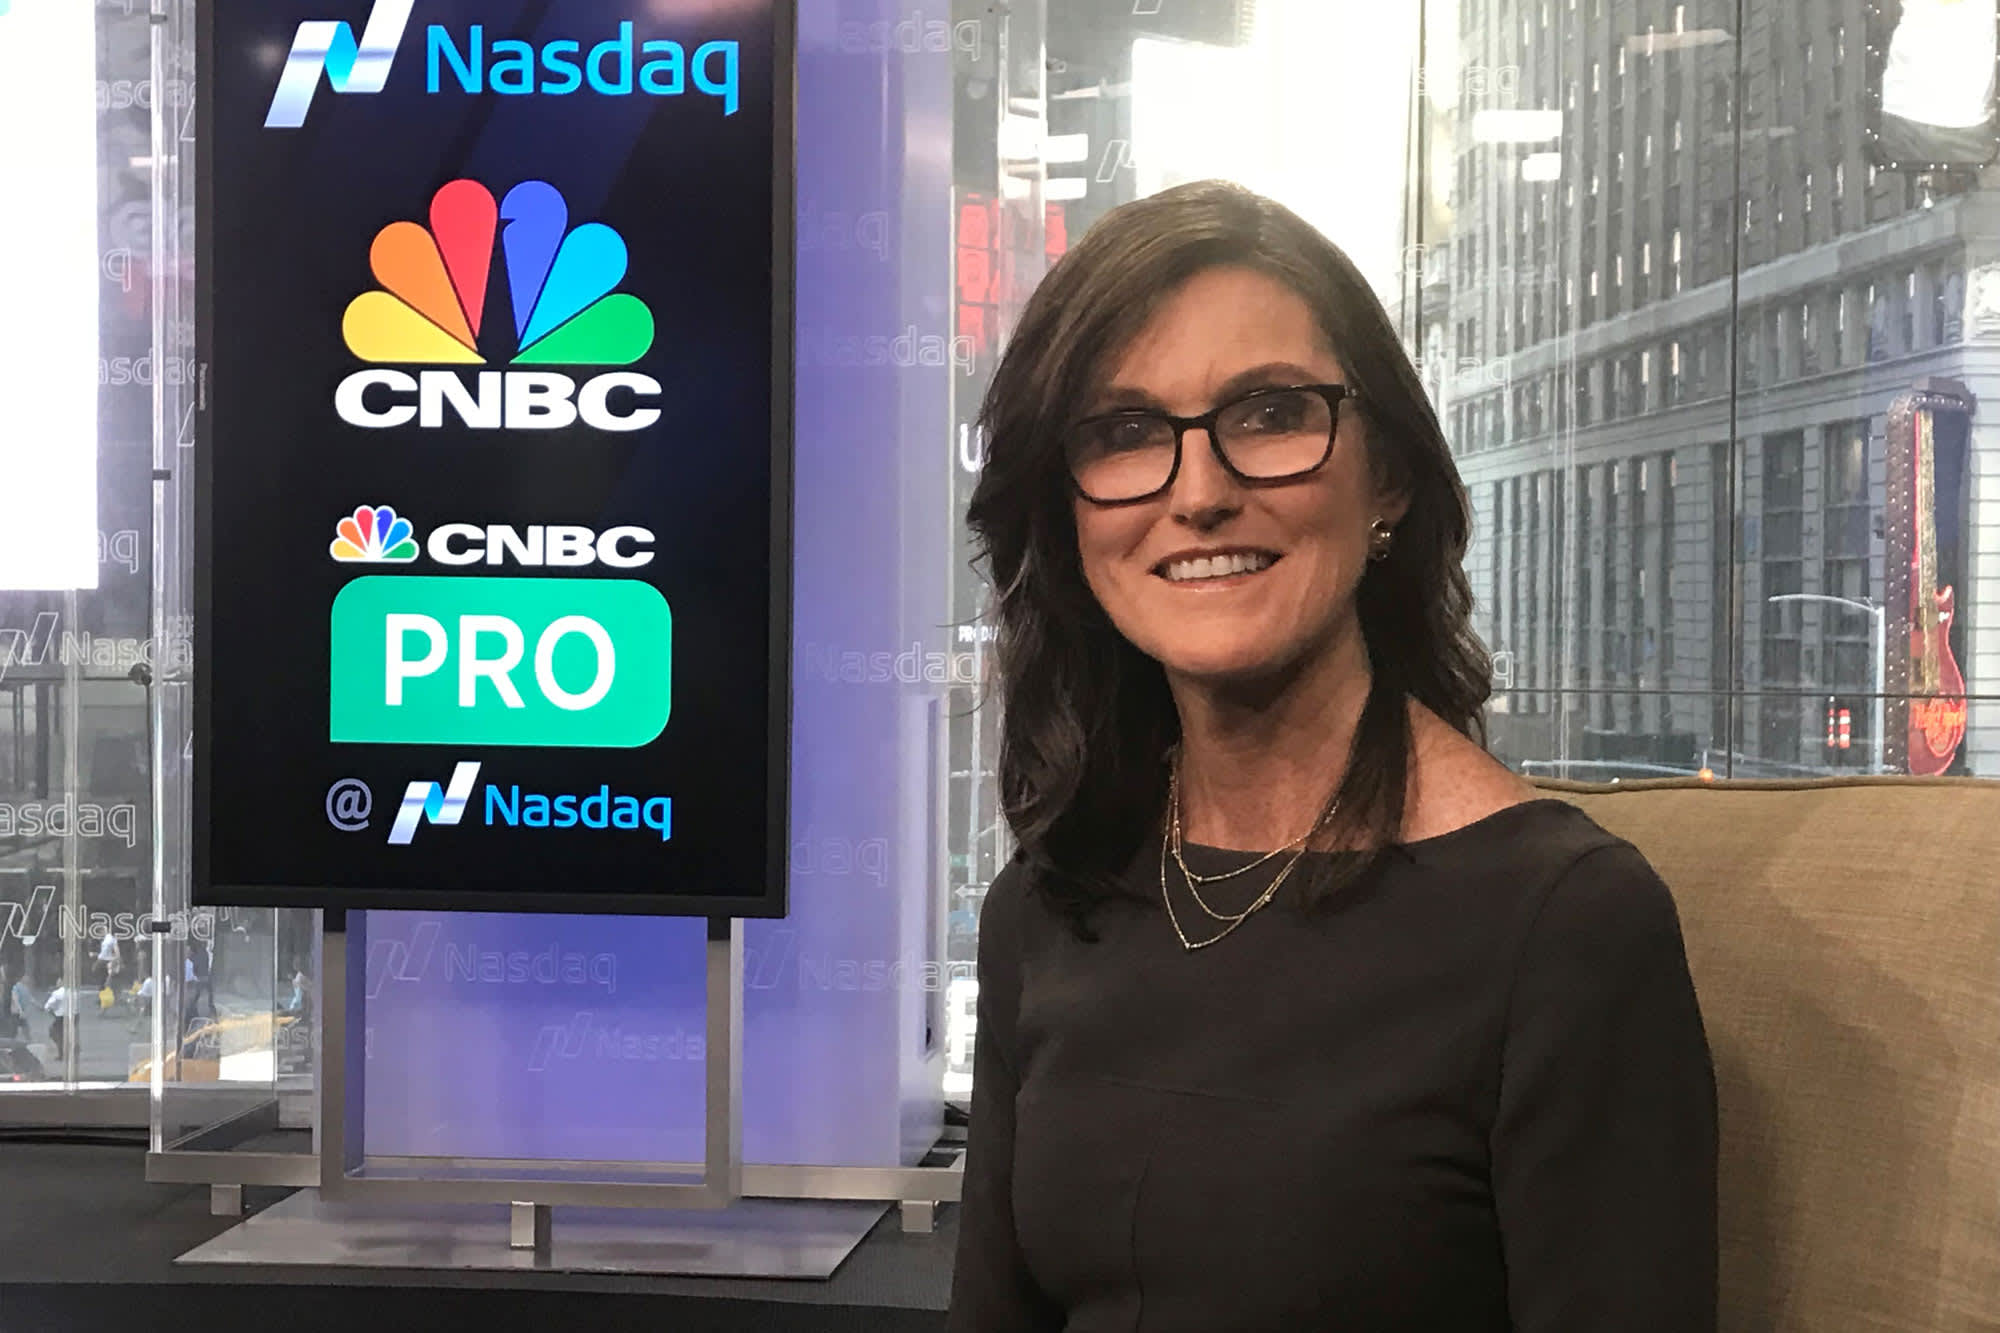 Cathie Wood says the underlying bull market is strengthening and she's finding great buying opportunities in the sell-off